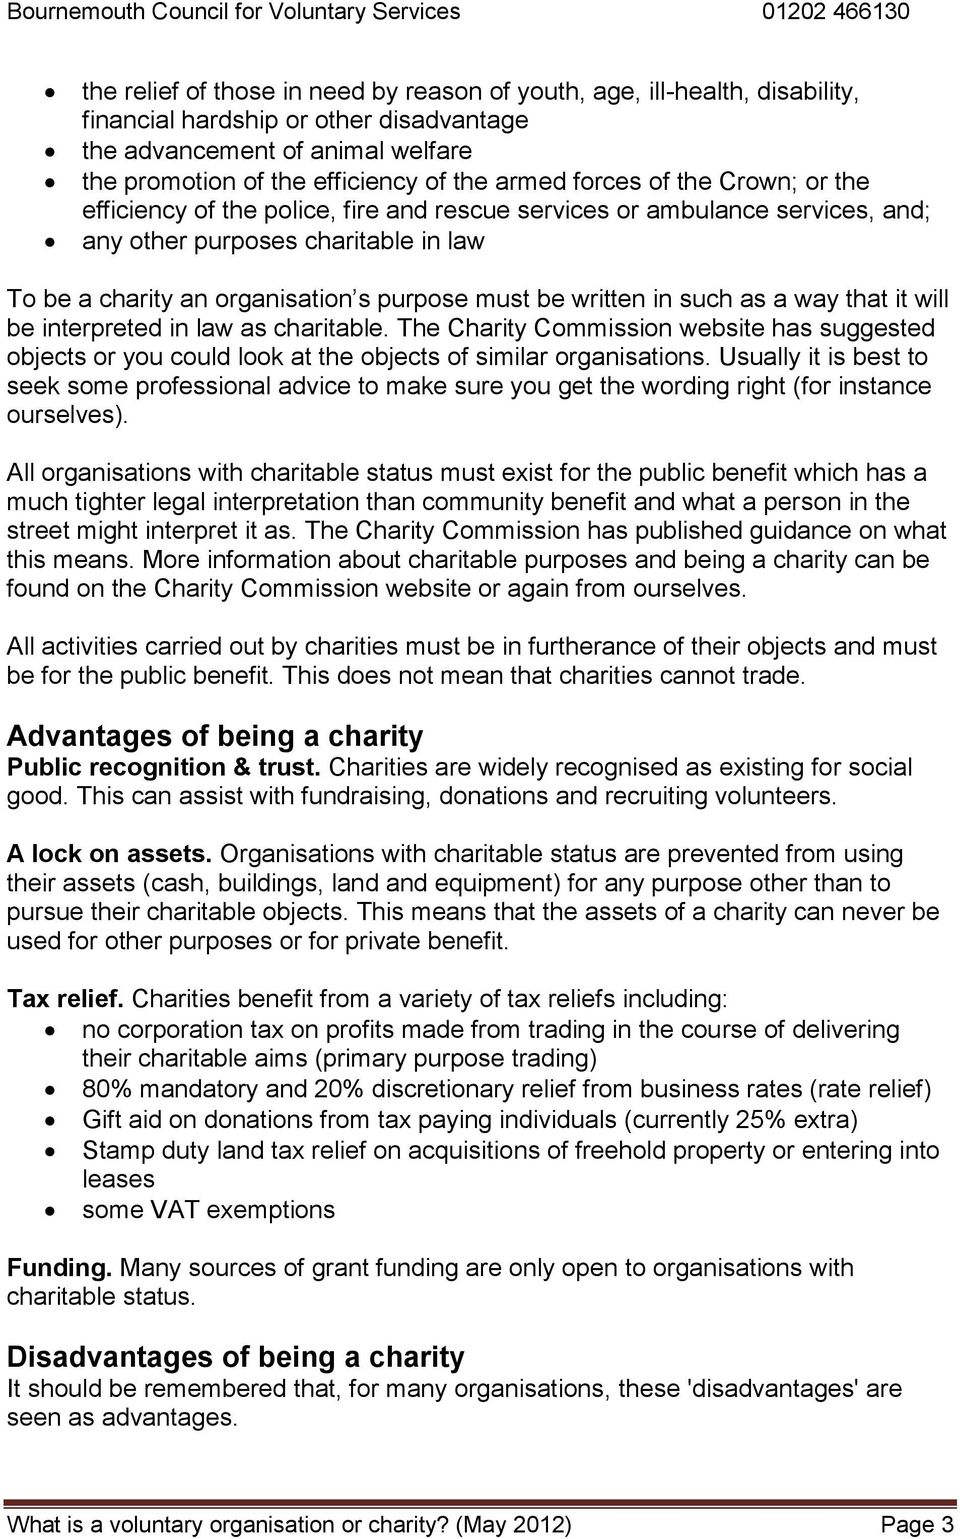 written in such as a way that it will be interpreted in law as charitable. The Charity Commission website has suggested objects or you could look at the objects of similar organisations.